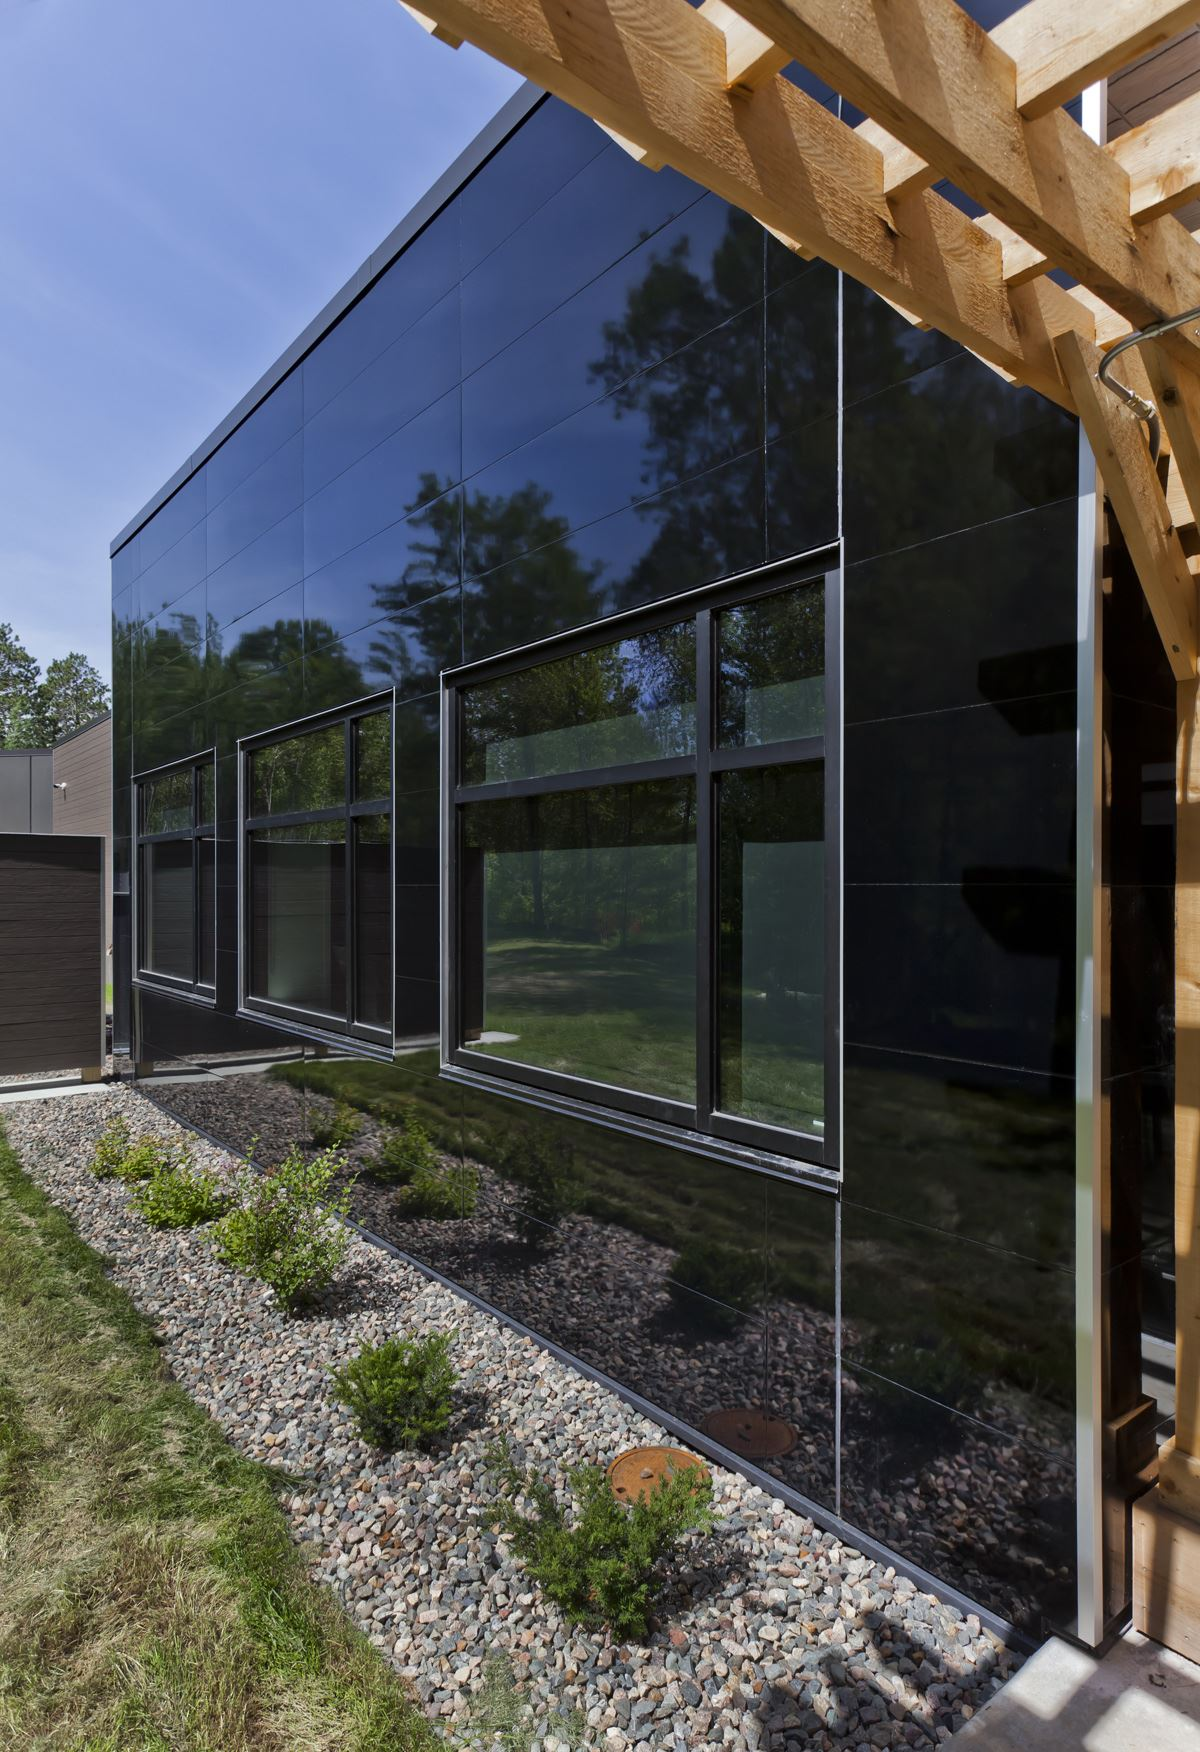 Side of Paul Bunyan building with Miraia panels in Onyx showing reflection of trees